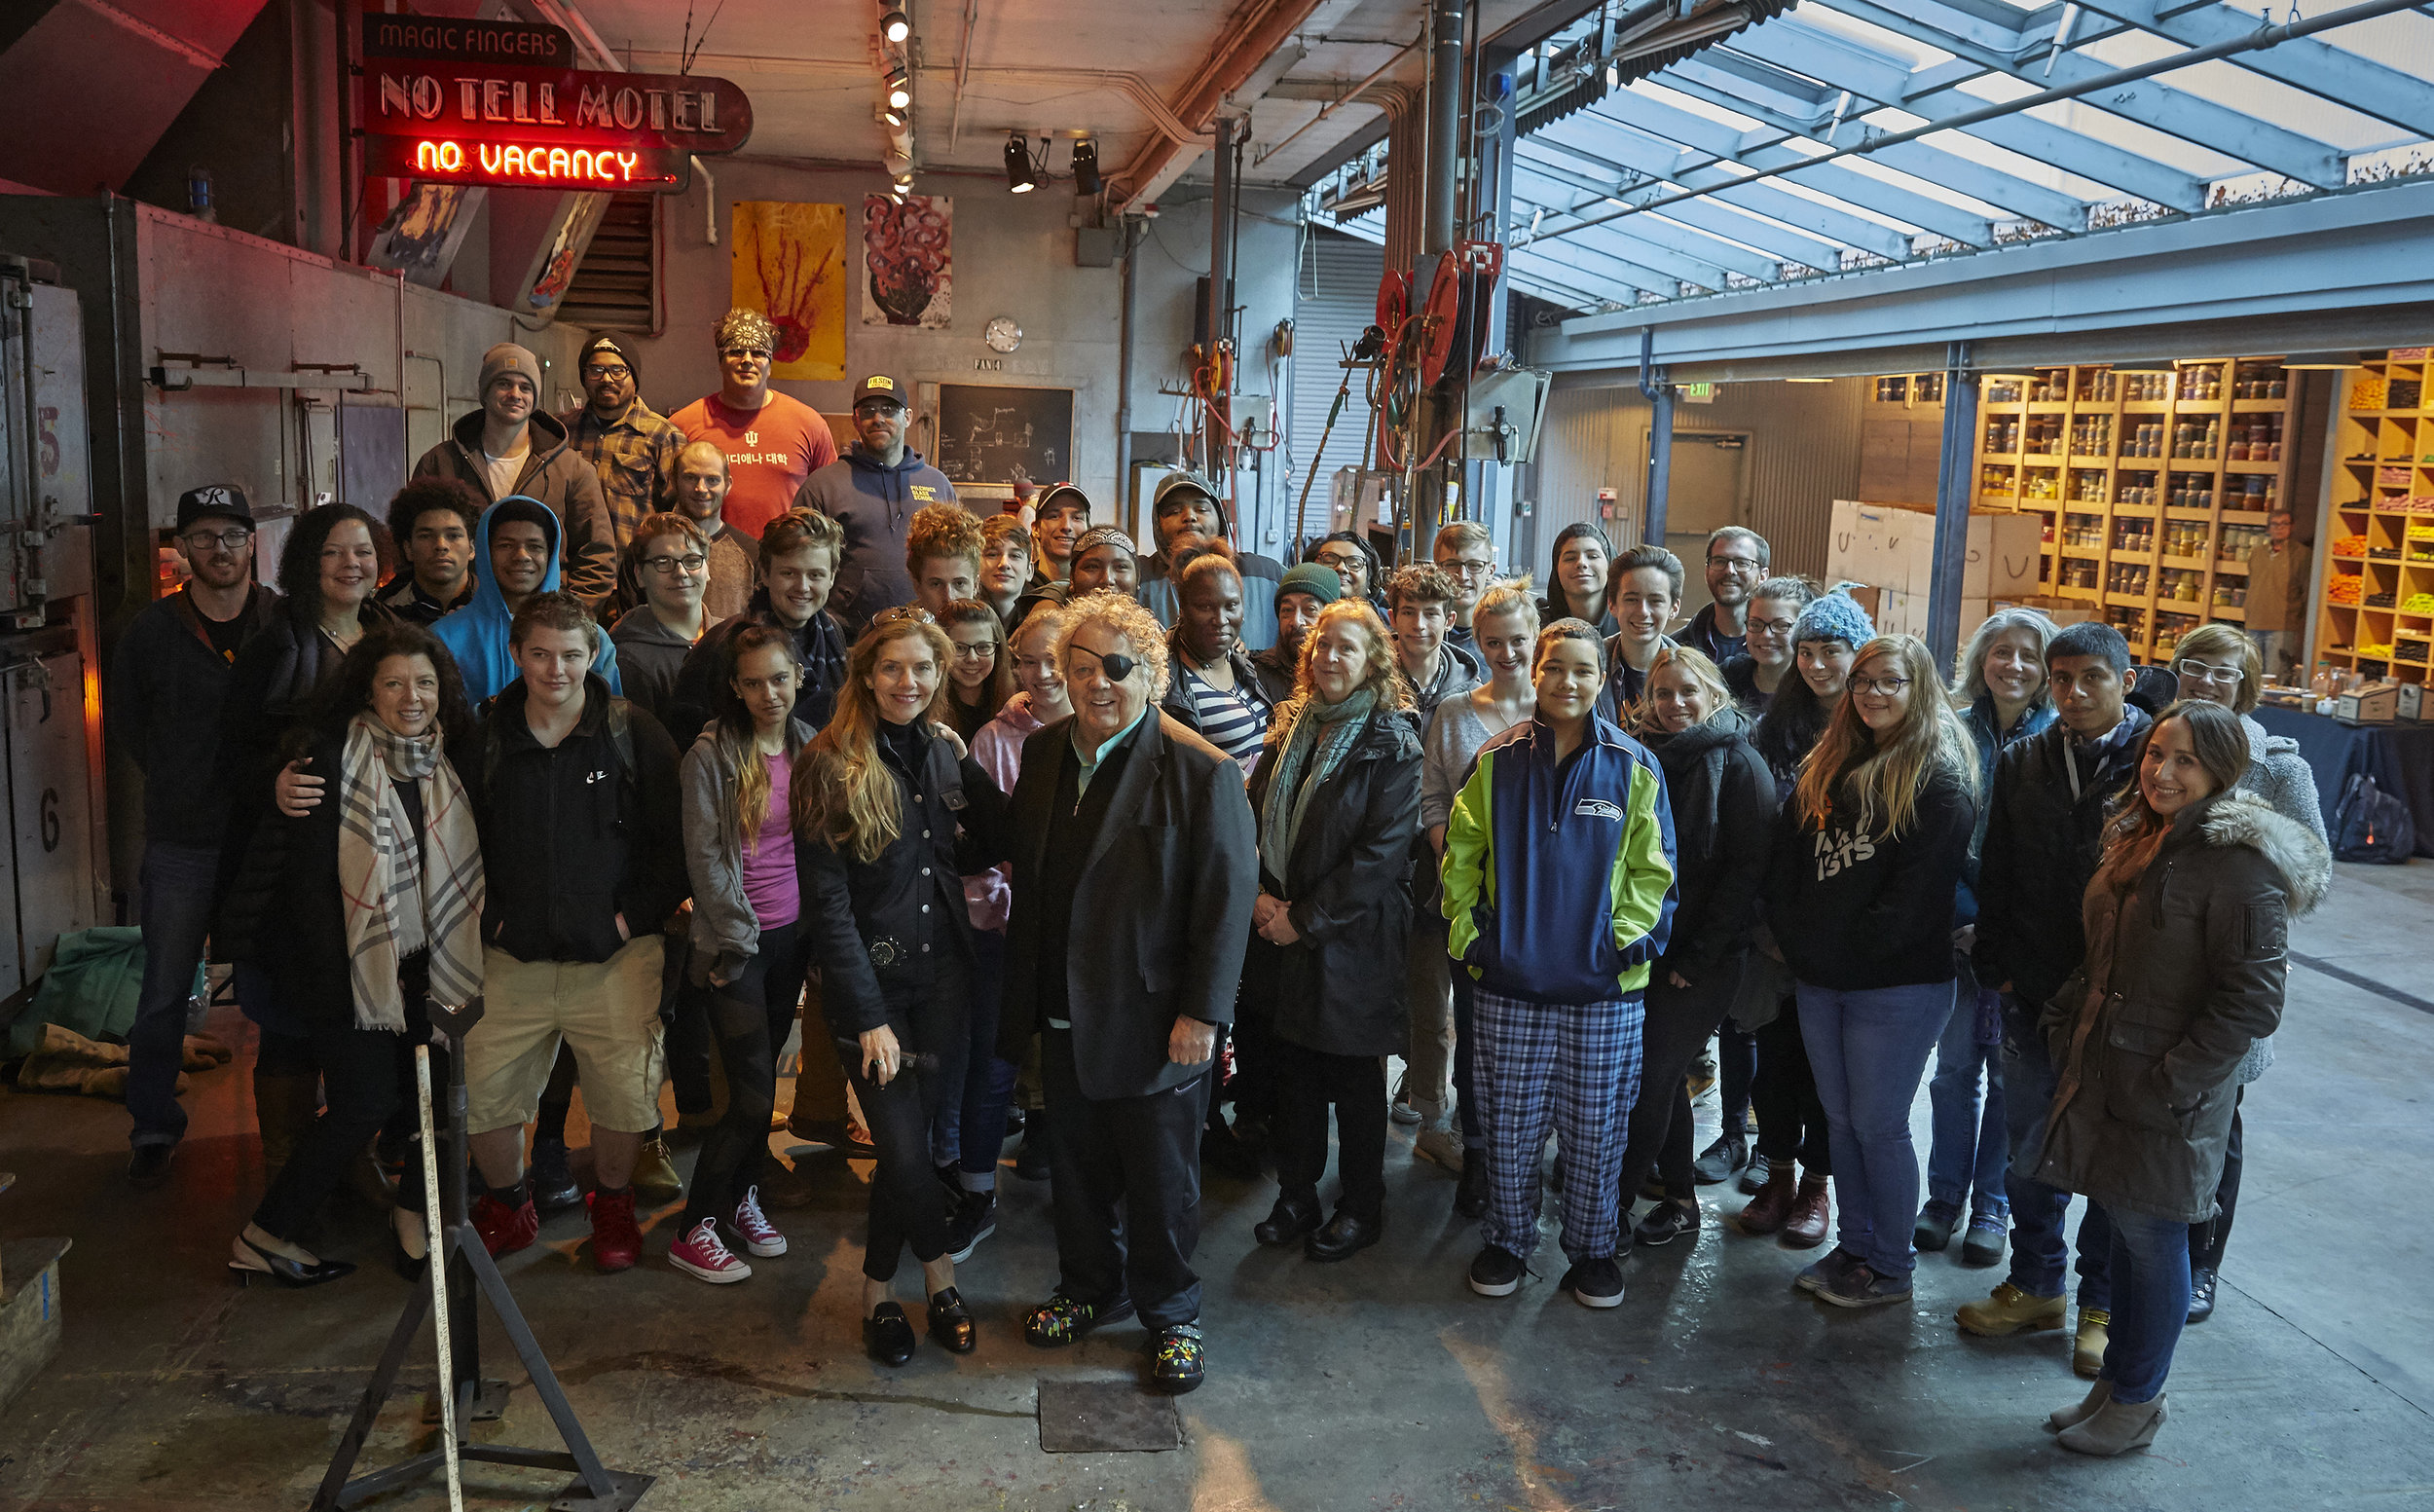 Dale and Leslie Chihuly, Team Chihuly, and Hilltop Artists students and faculty at The Boathouse Hotshop, 2017. © Chihuly Studio. All Rights Reserved.